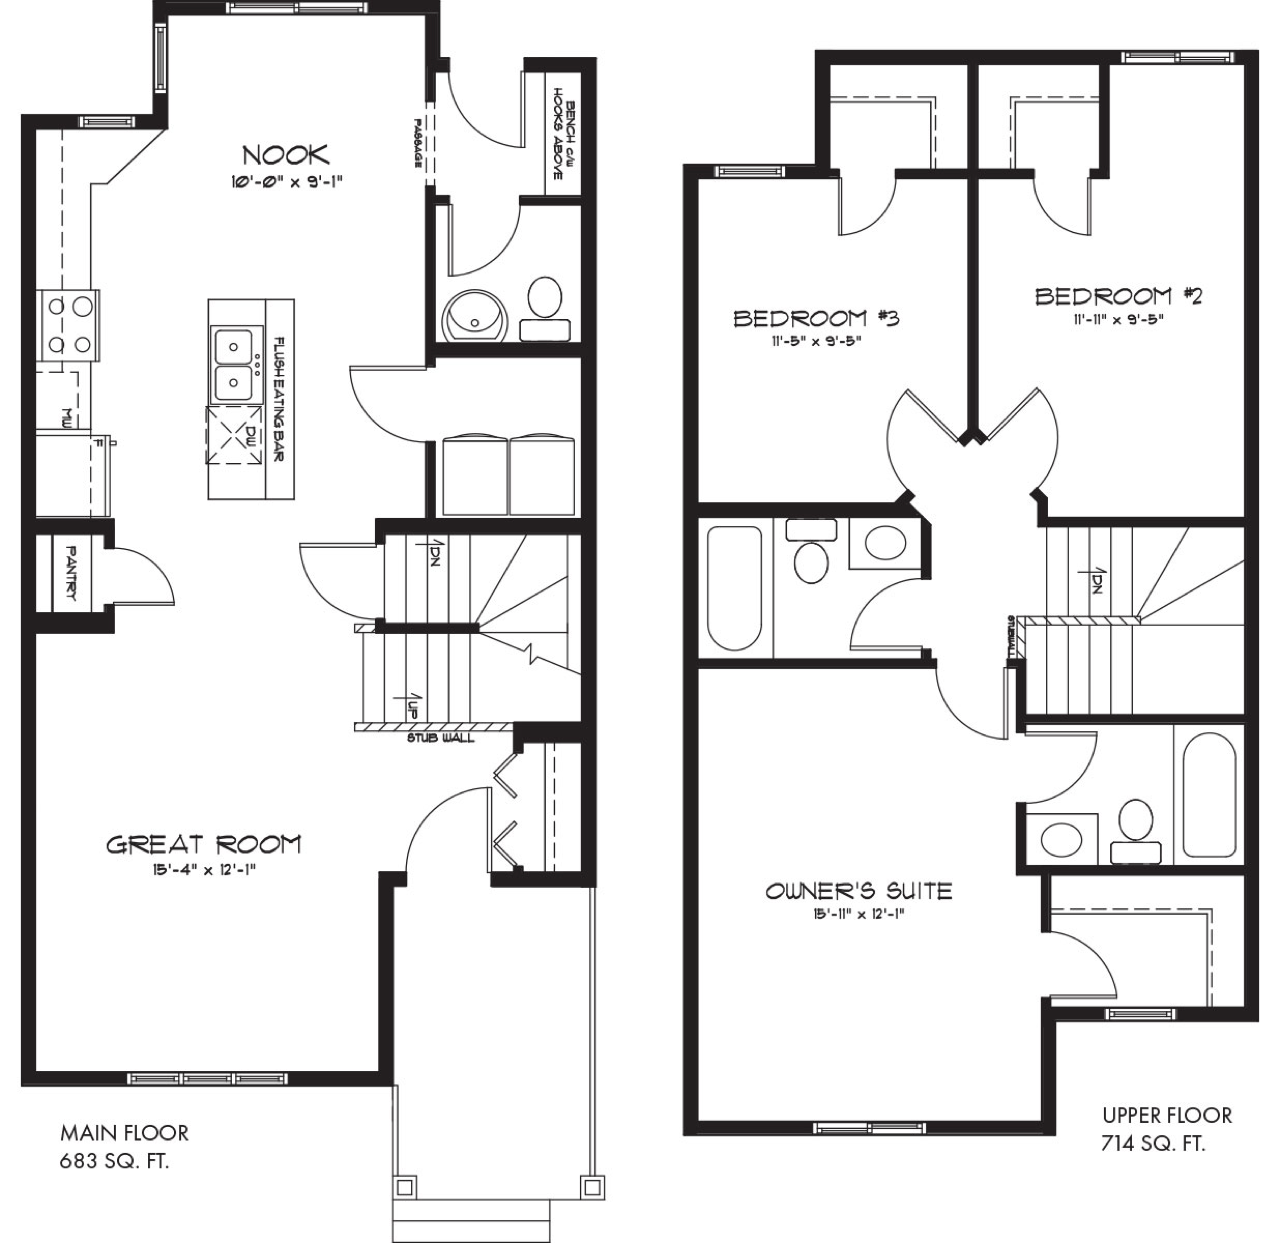 Latest Quick Possession Homes From Pacesetter Affirmed Floor Plan Image